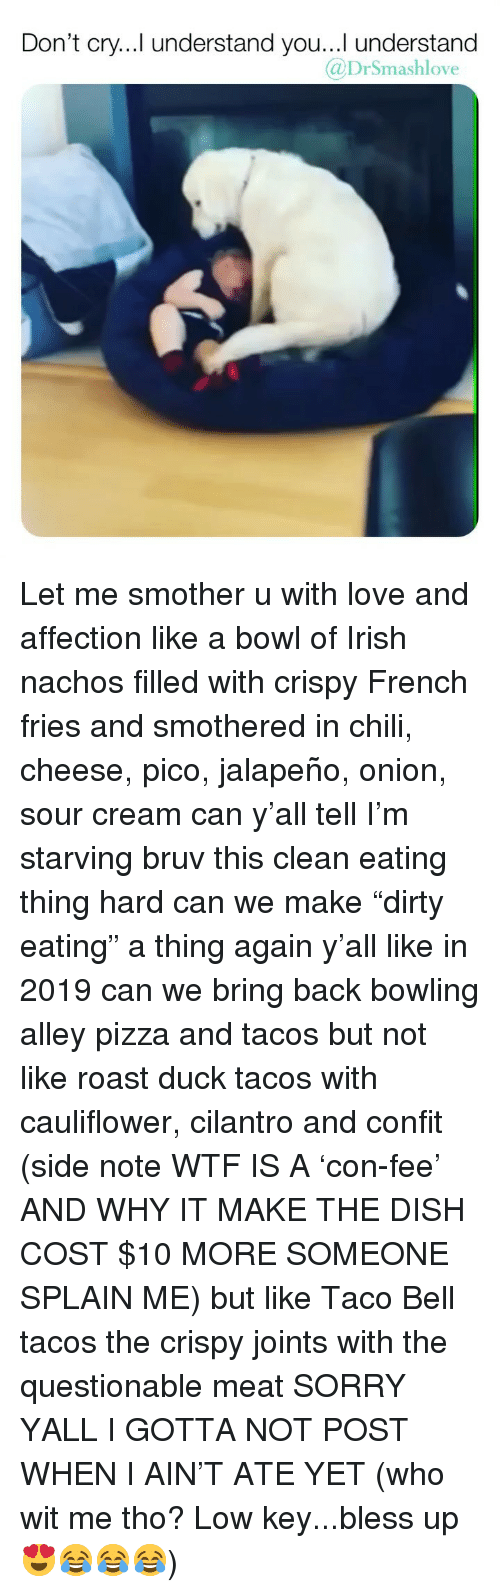 "Bless Up, Irish, and Love: Don't cry...Il understand you...I understand  @DrSmashlove Let me smother u with love and affection like a bowl of Irish nachos filled with crispy French fries and smothered in chili, cheese, pico, jalapeño, onion, sour cream can y'all tell I'm starving bruv this clean eating thing hard can we make ""dirty eating"" a thing again y'all like in 2019 can we bring back bowling alley pizza and tacos but not like roast duck tacos with cauliflower, cilantro and confit (side note WTF IS A 'con-fee' AND WHY IT MAKE THE DISH COST $10 MORE SOMEONE SPLAIN ME) but like Taco Bell tacos the crispy joints with the questionable meat SORRY YALL I GOTTA NOT POST WHEN I AIN'T ATE YET (who wit me tho? Low key...bless up 😍😂😂😂)"